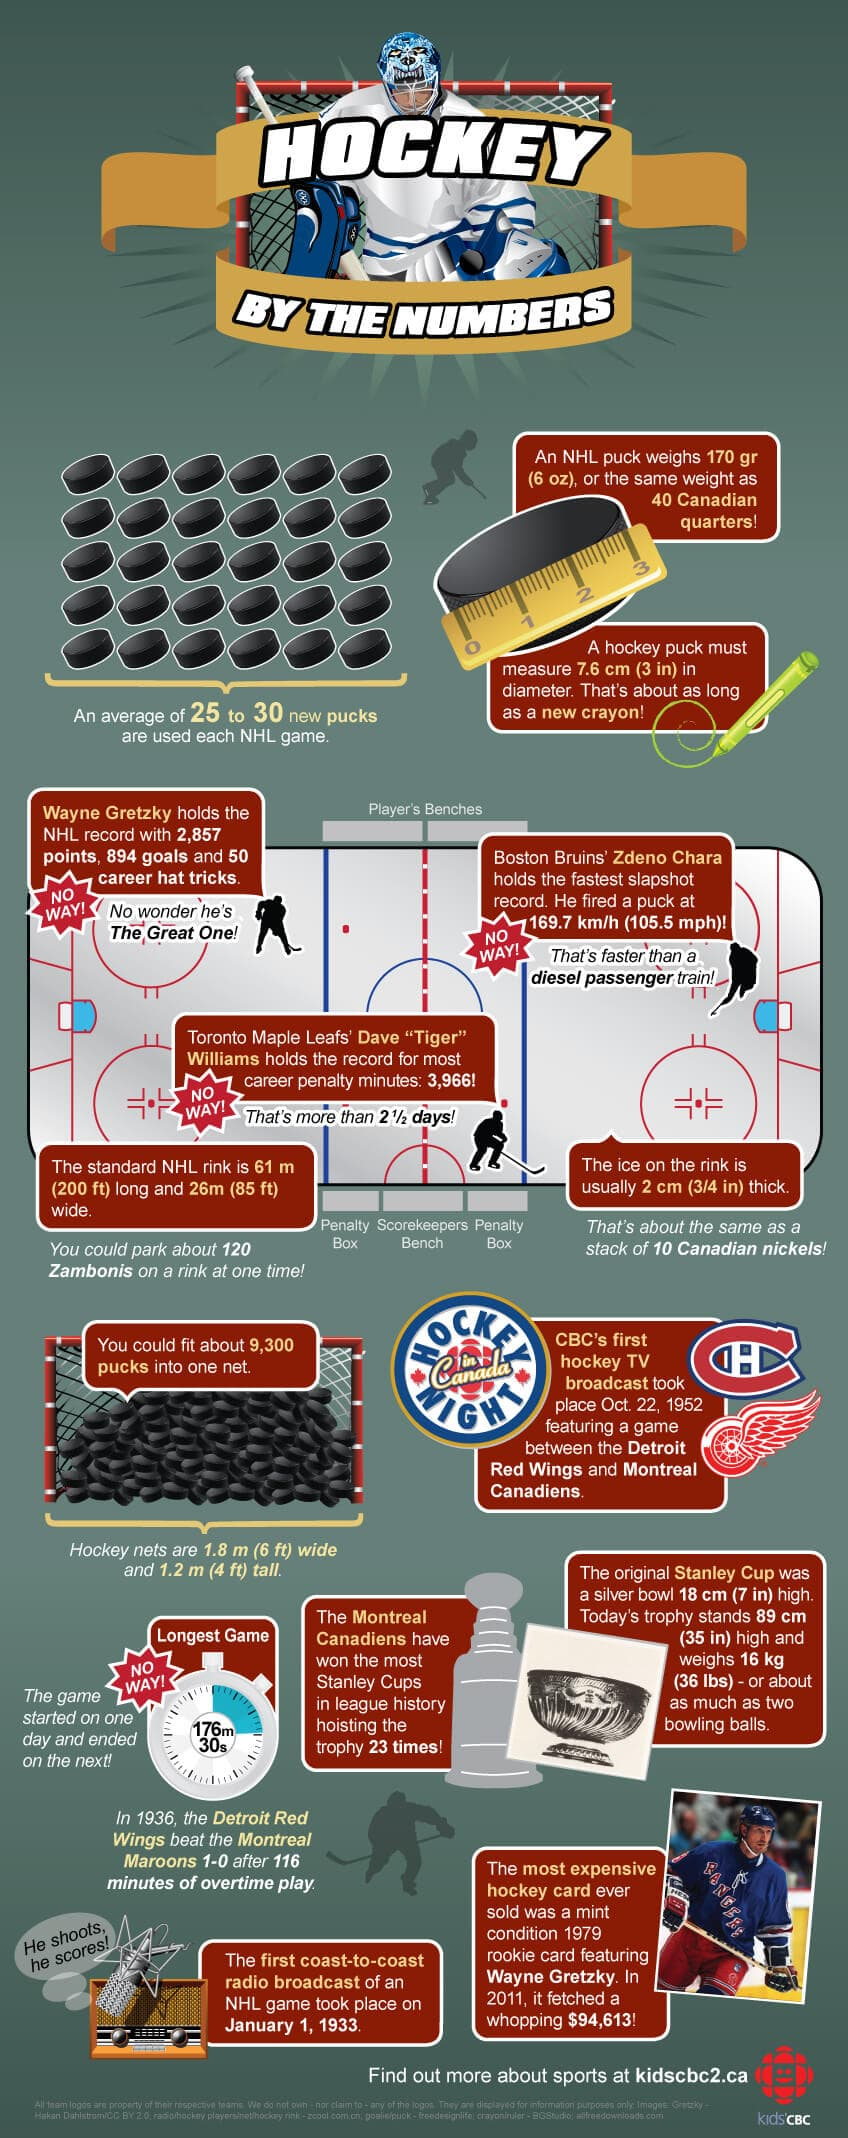 hockey by the numbers infographic